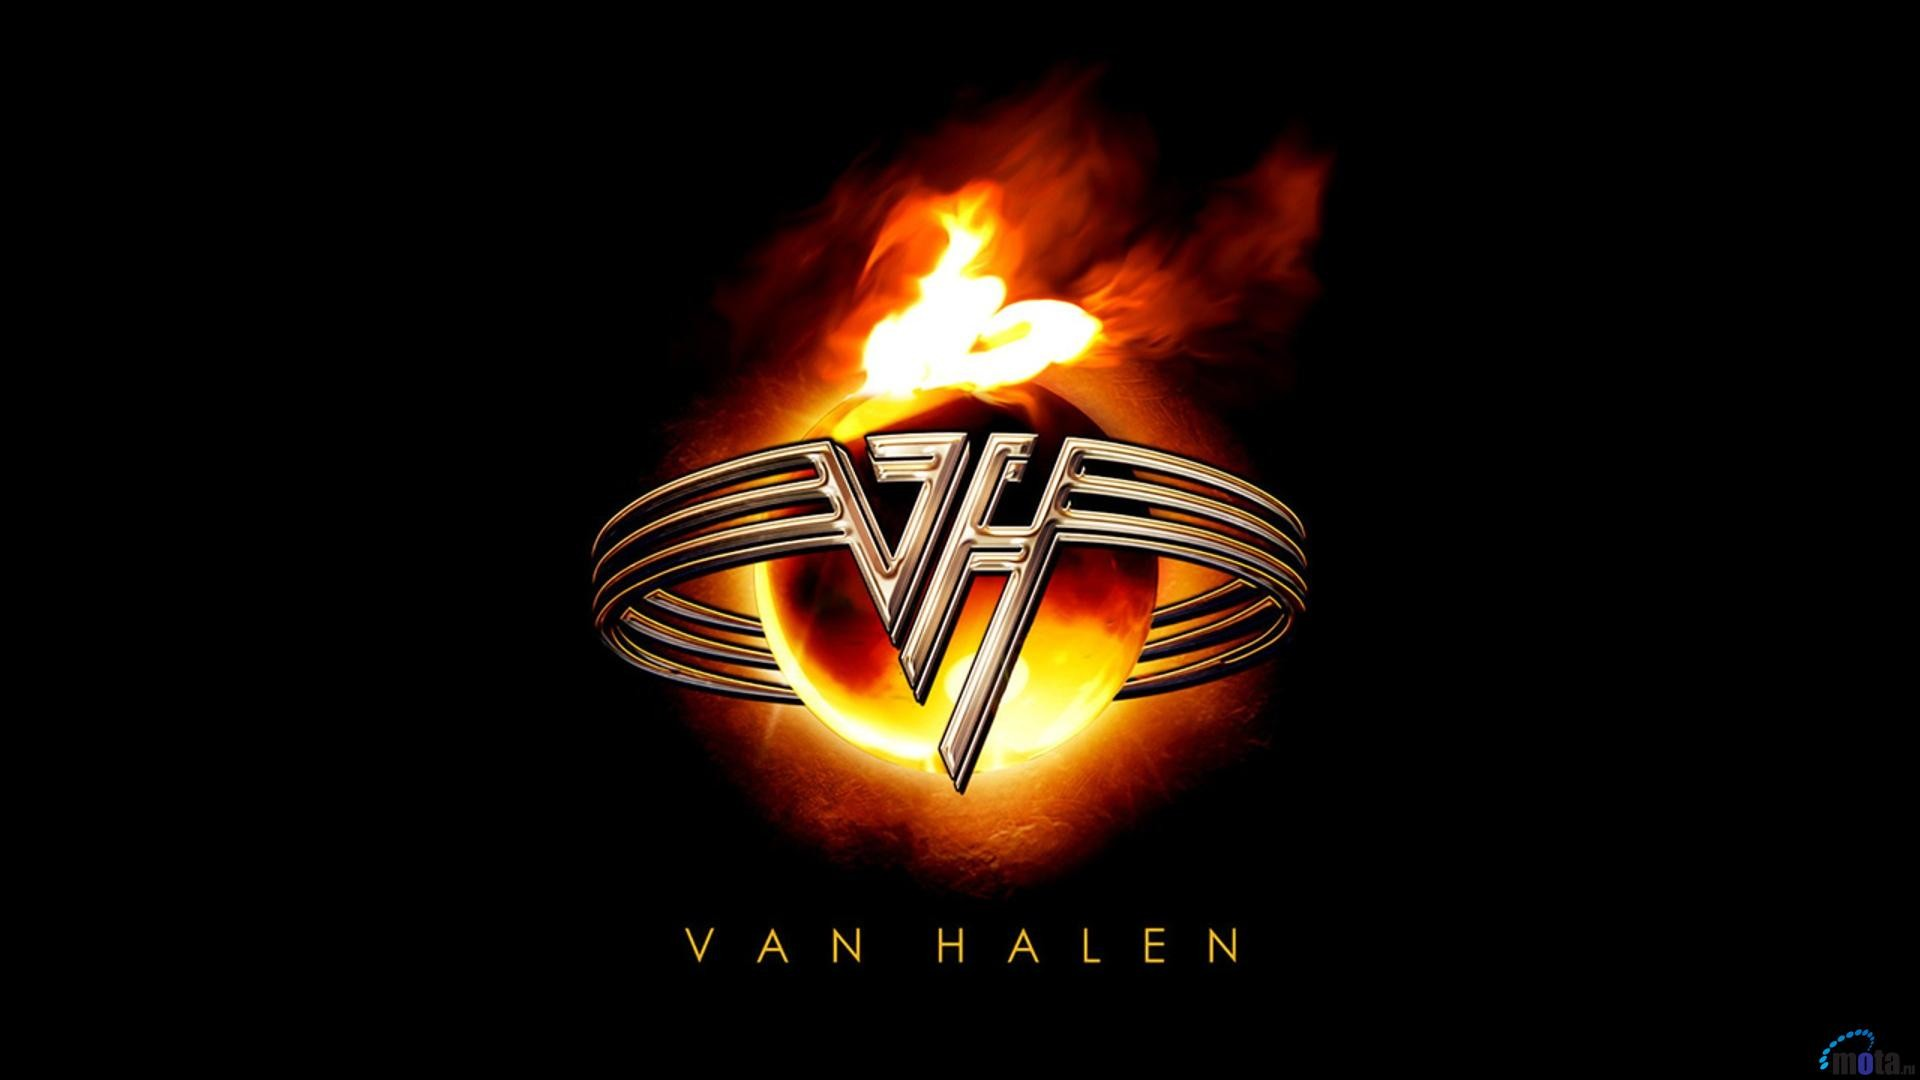 Van halen wallpapers - Van halen hd wallpaper ...